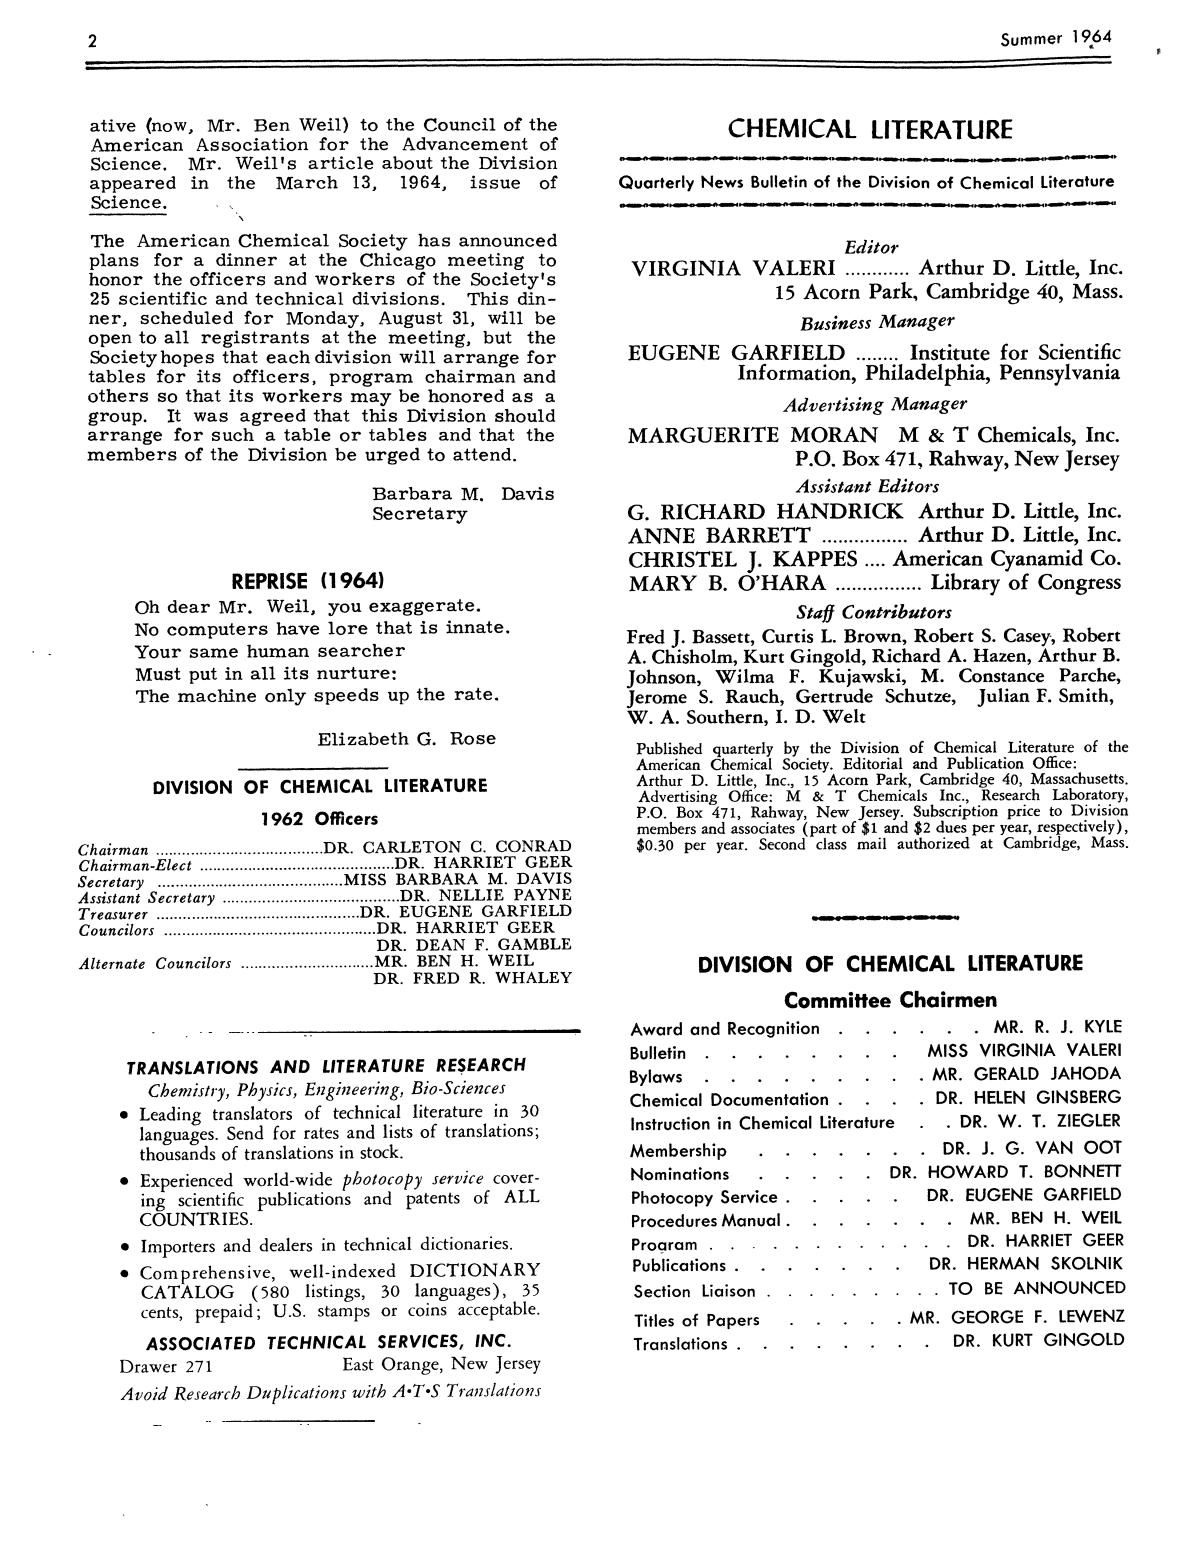 Chemical Literature, Volume 16, Number 2, Summer 1964                                                                                                      2